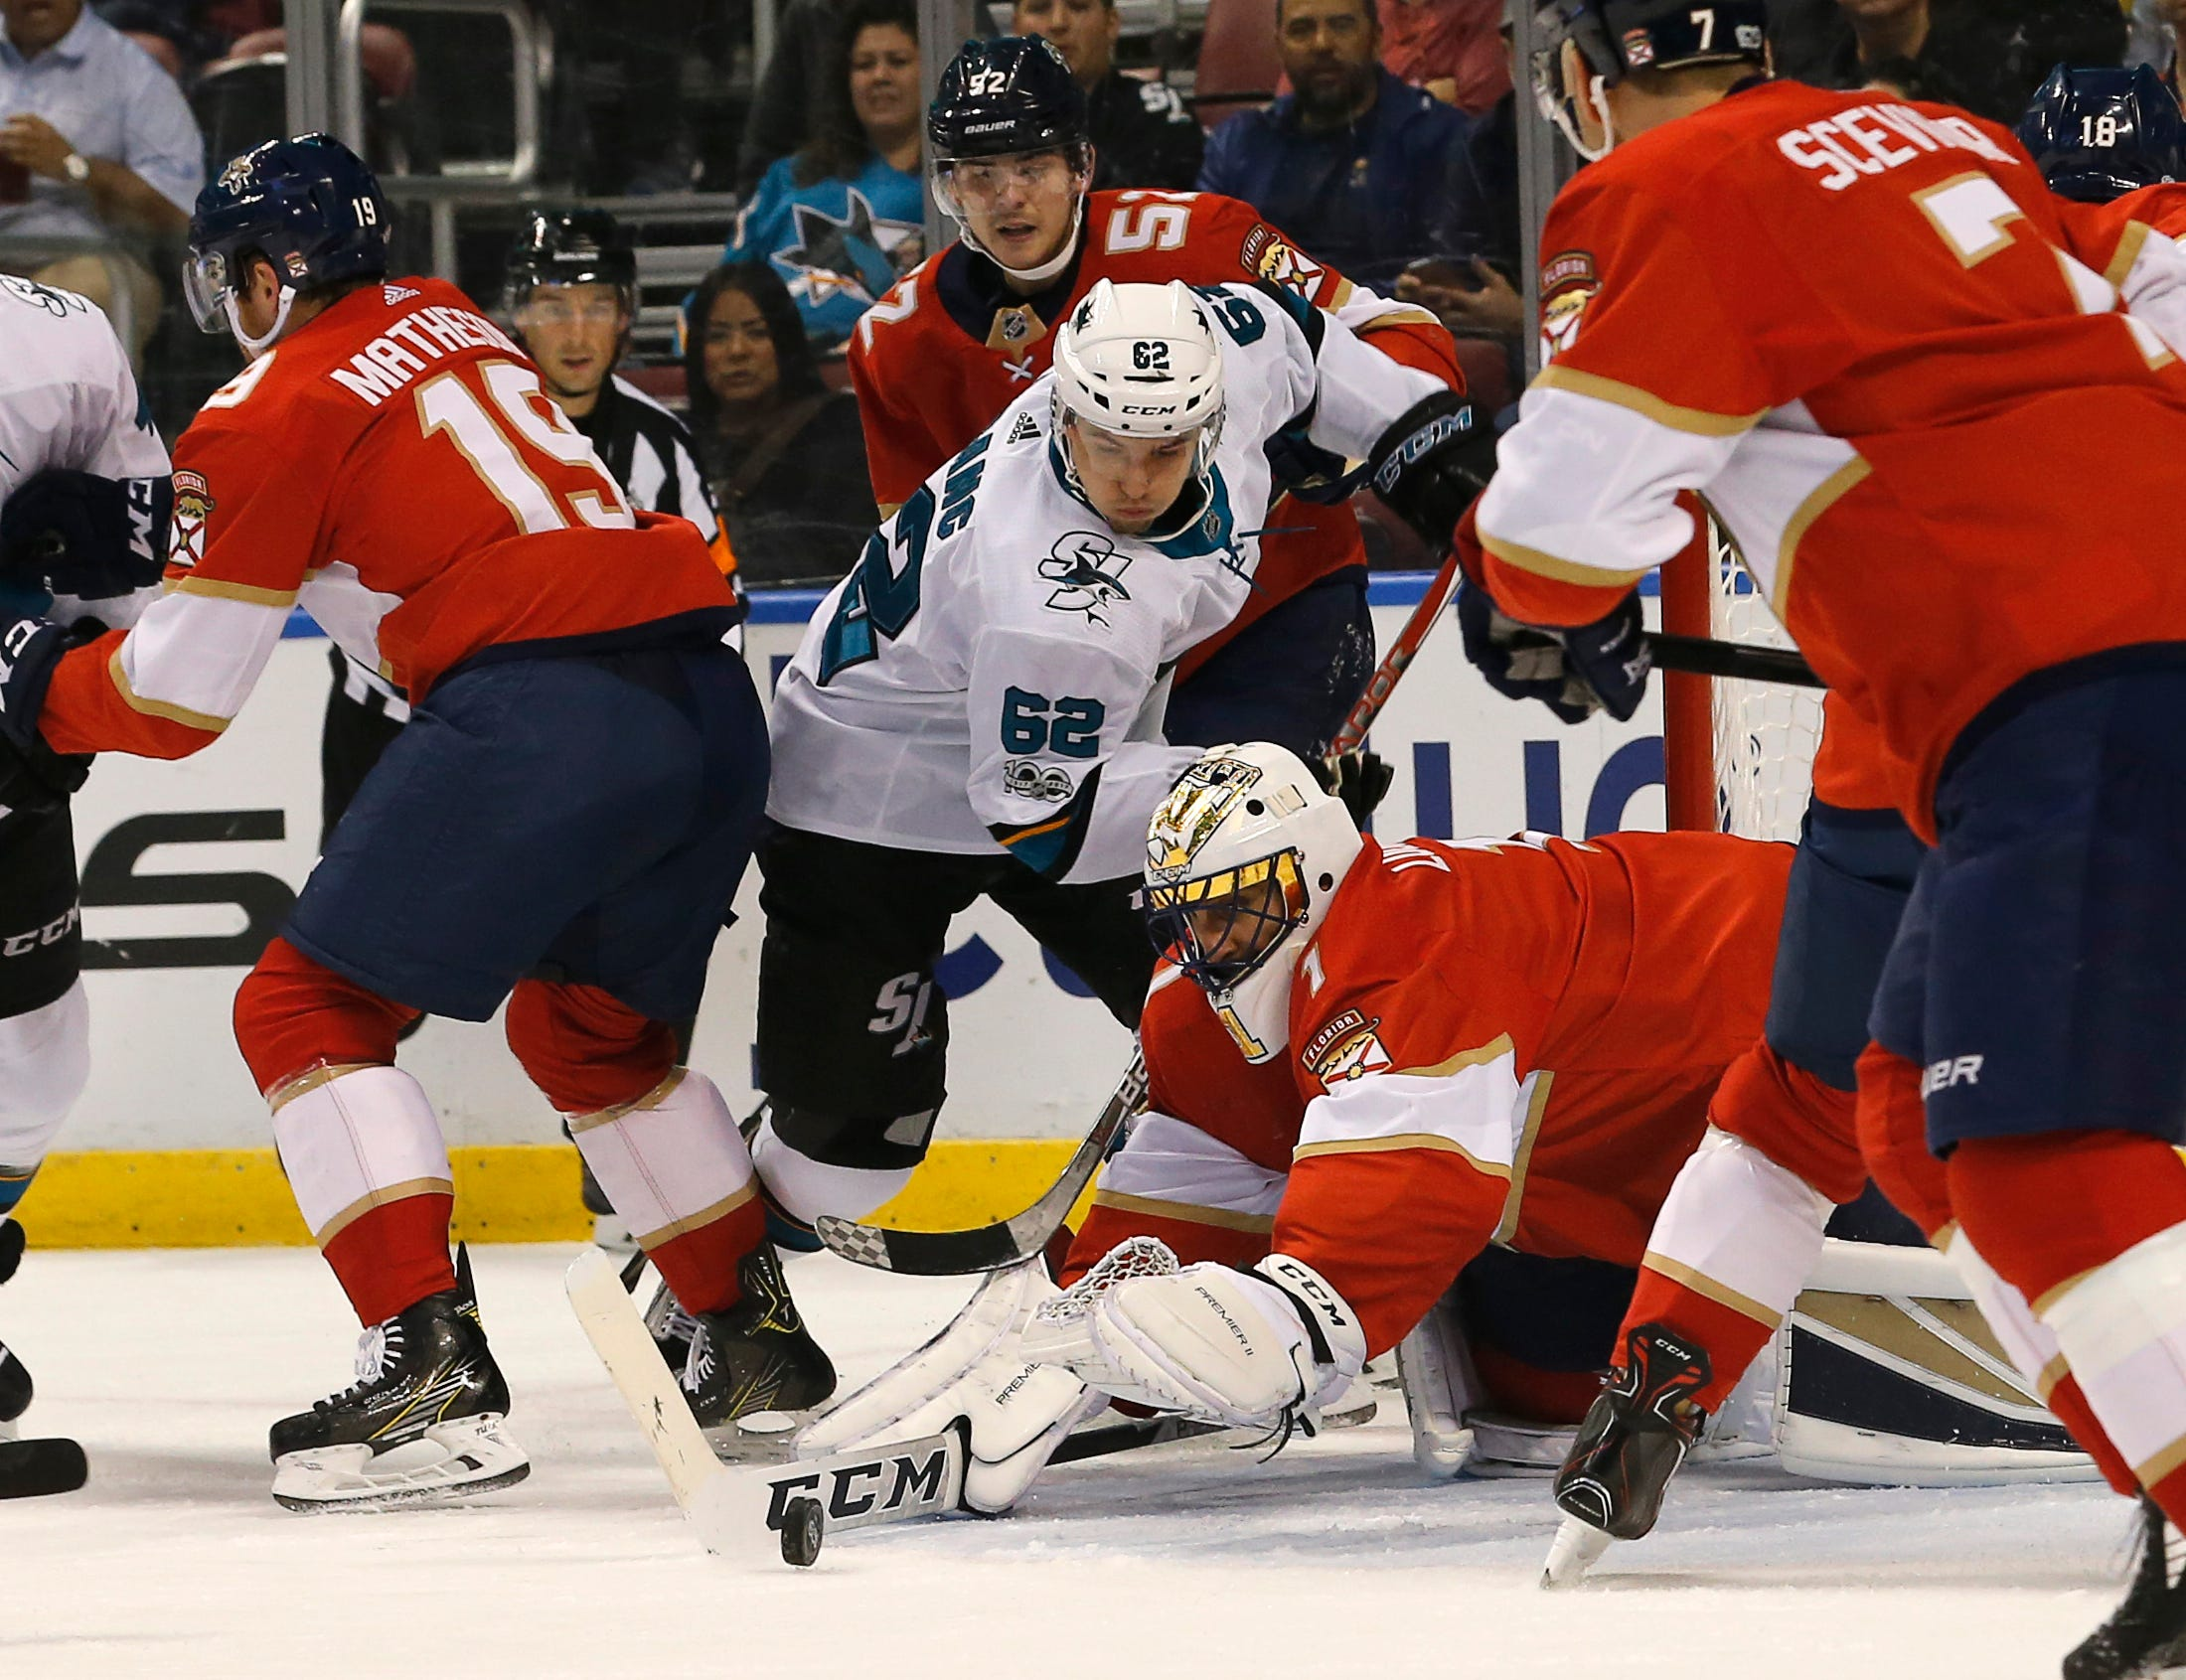 Tierney scores in 3rd to help Sharks beat Panthers 2-1